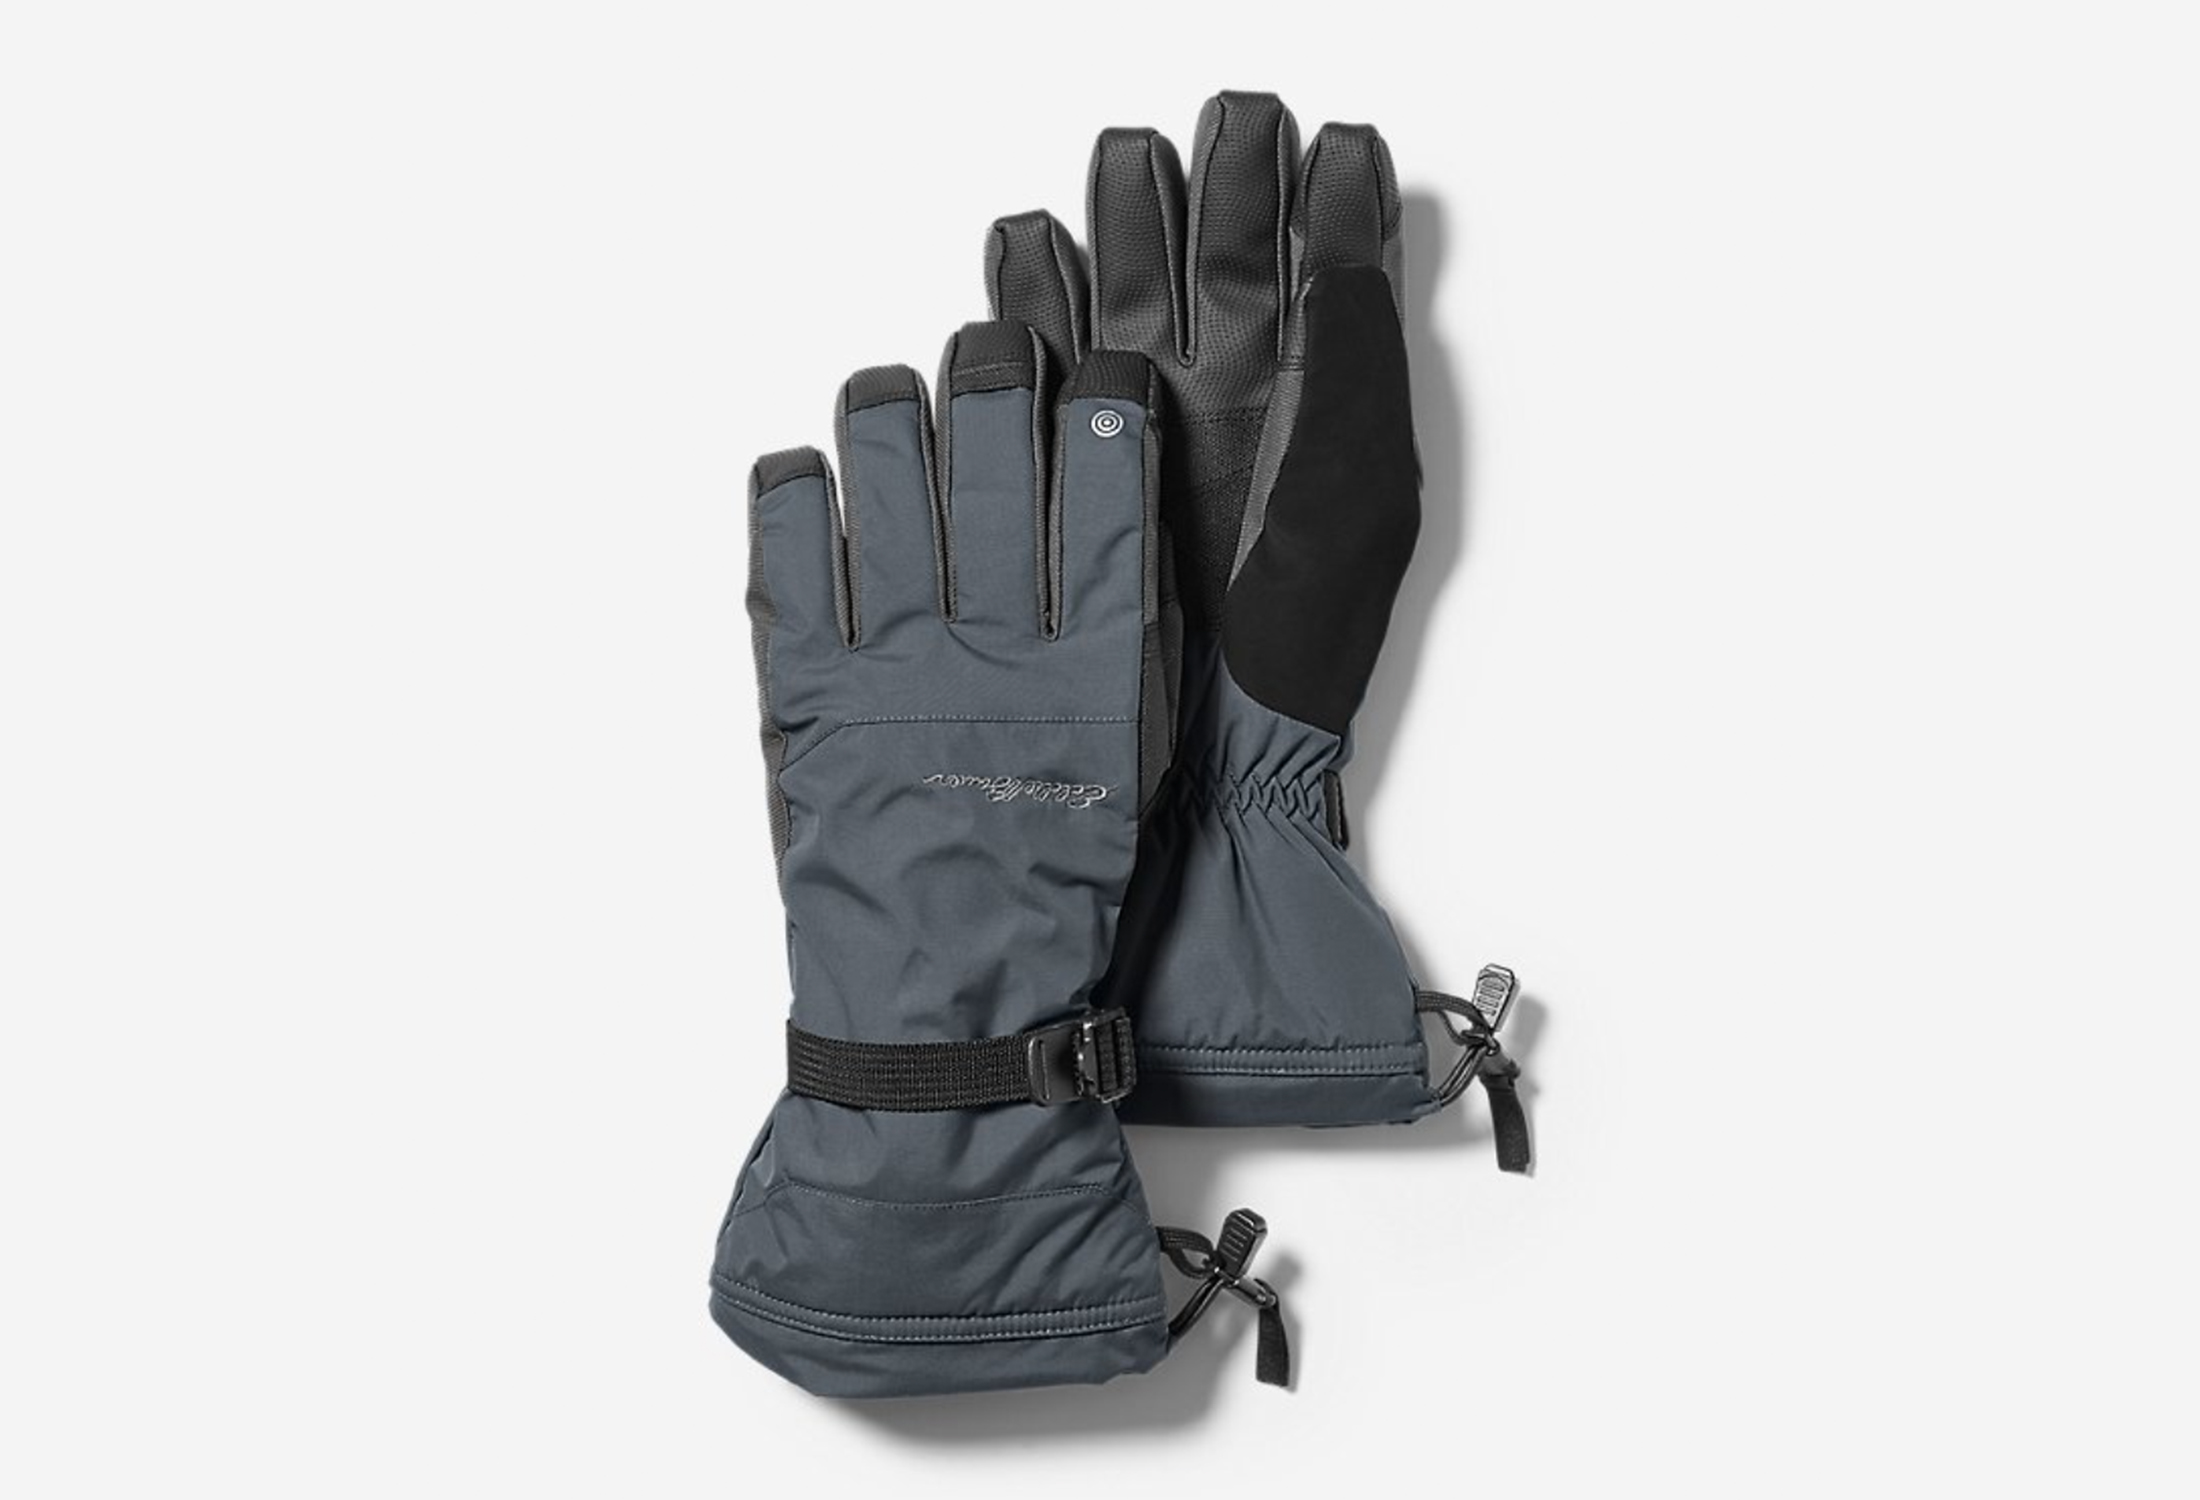 Eddie Bauer Powder touchscreen gloves